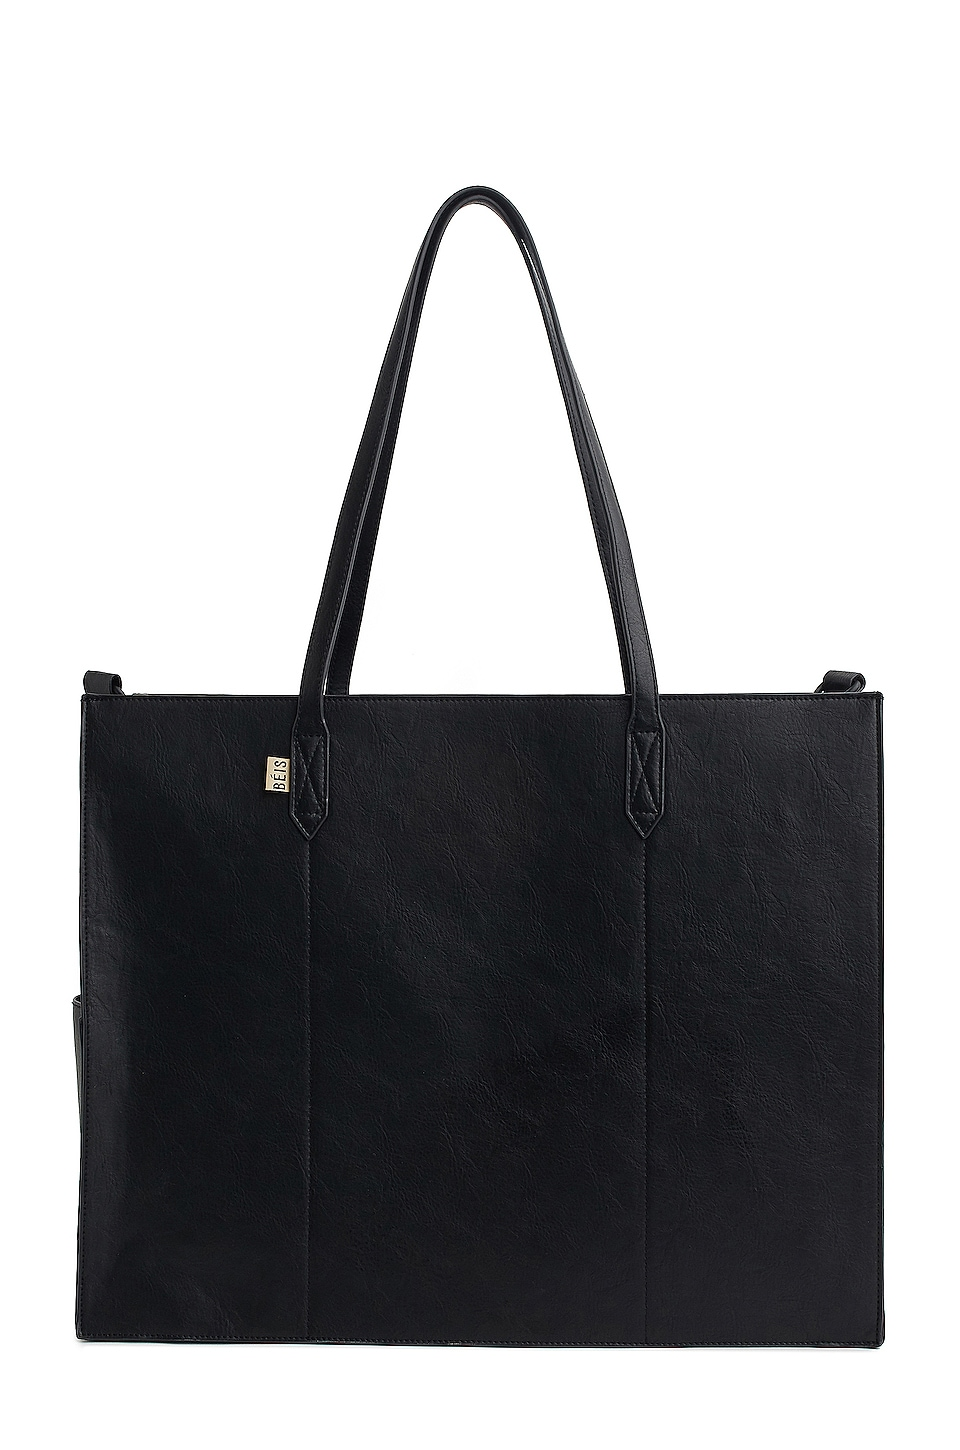 BEIS The Work Tote in Black